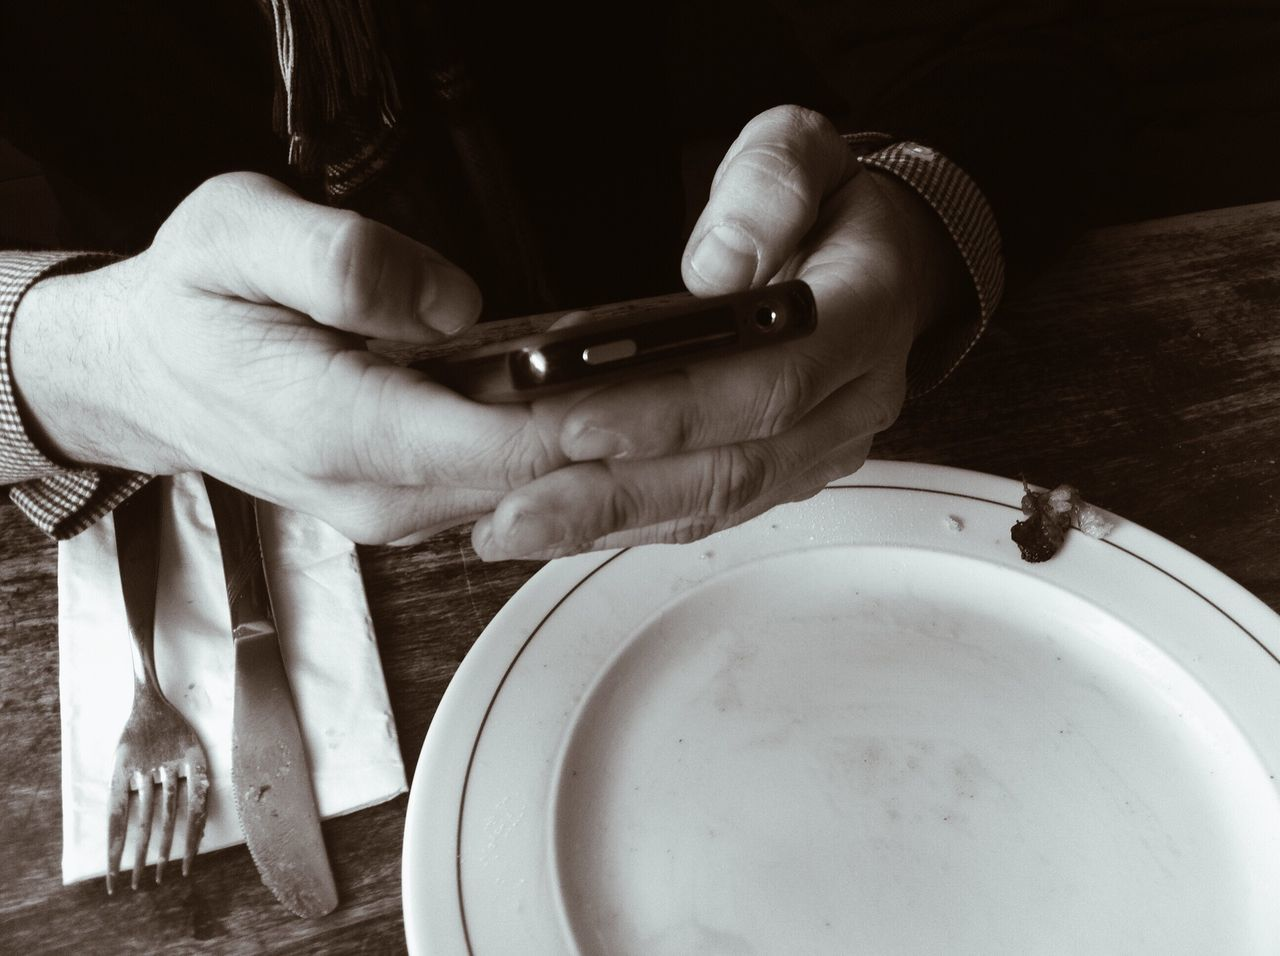 Mobile Conversations Human Hand Human Body Part Real People One Person Indoors  Holding Lifestyles Close-up People People Photography Blackandwhite Monochrome EyeEm Best Shots - Black + White Smartphone Food And Drink